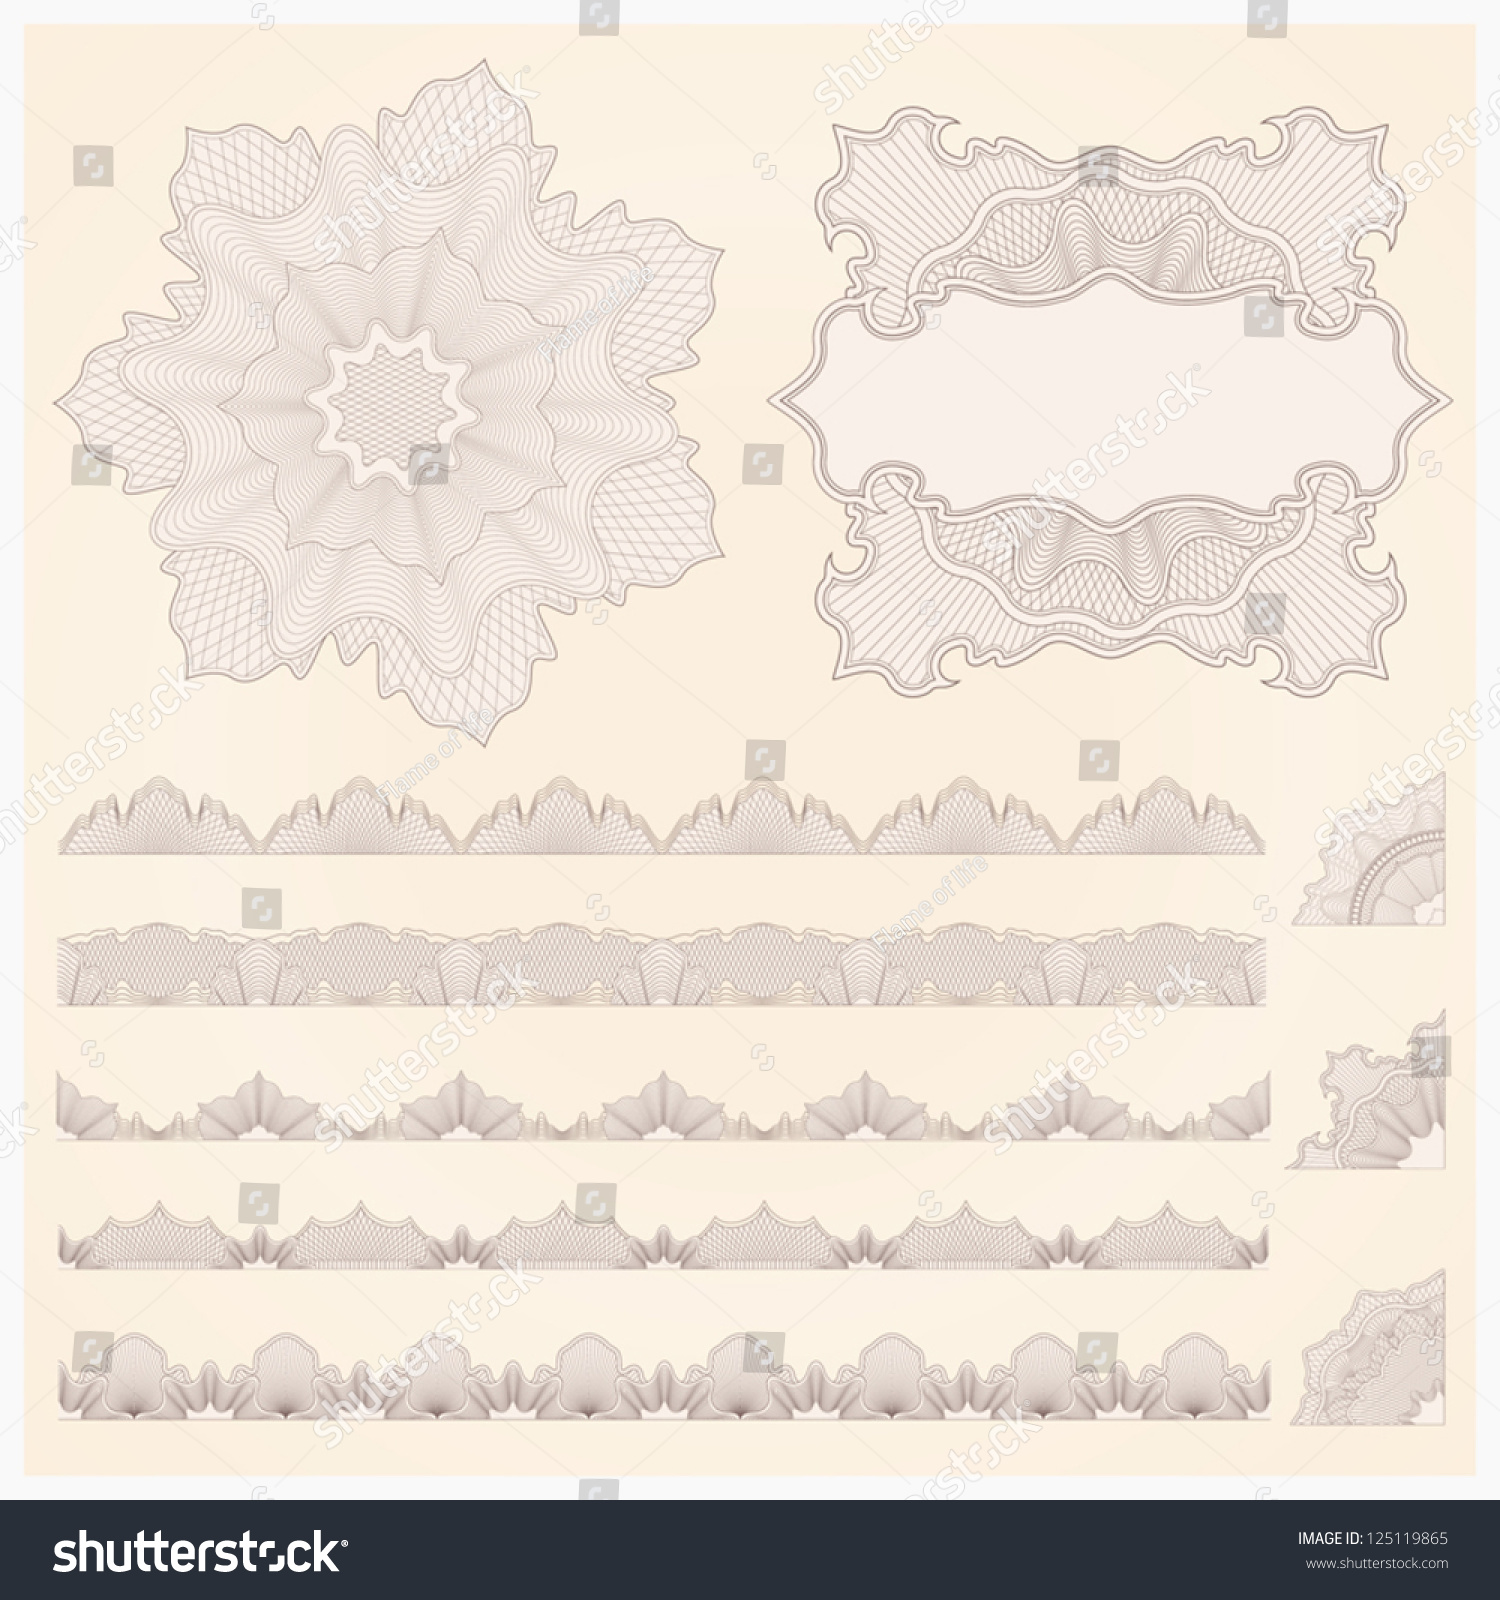 This Is Set Of Watermarks And Borders. Guilloche Pattern